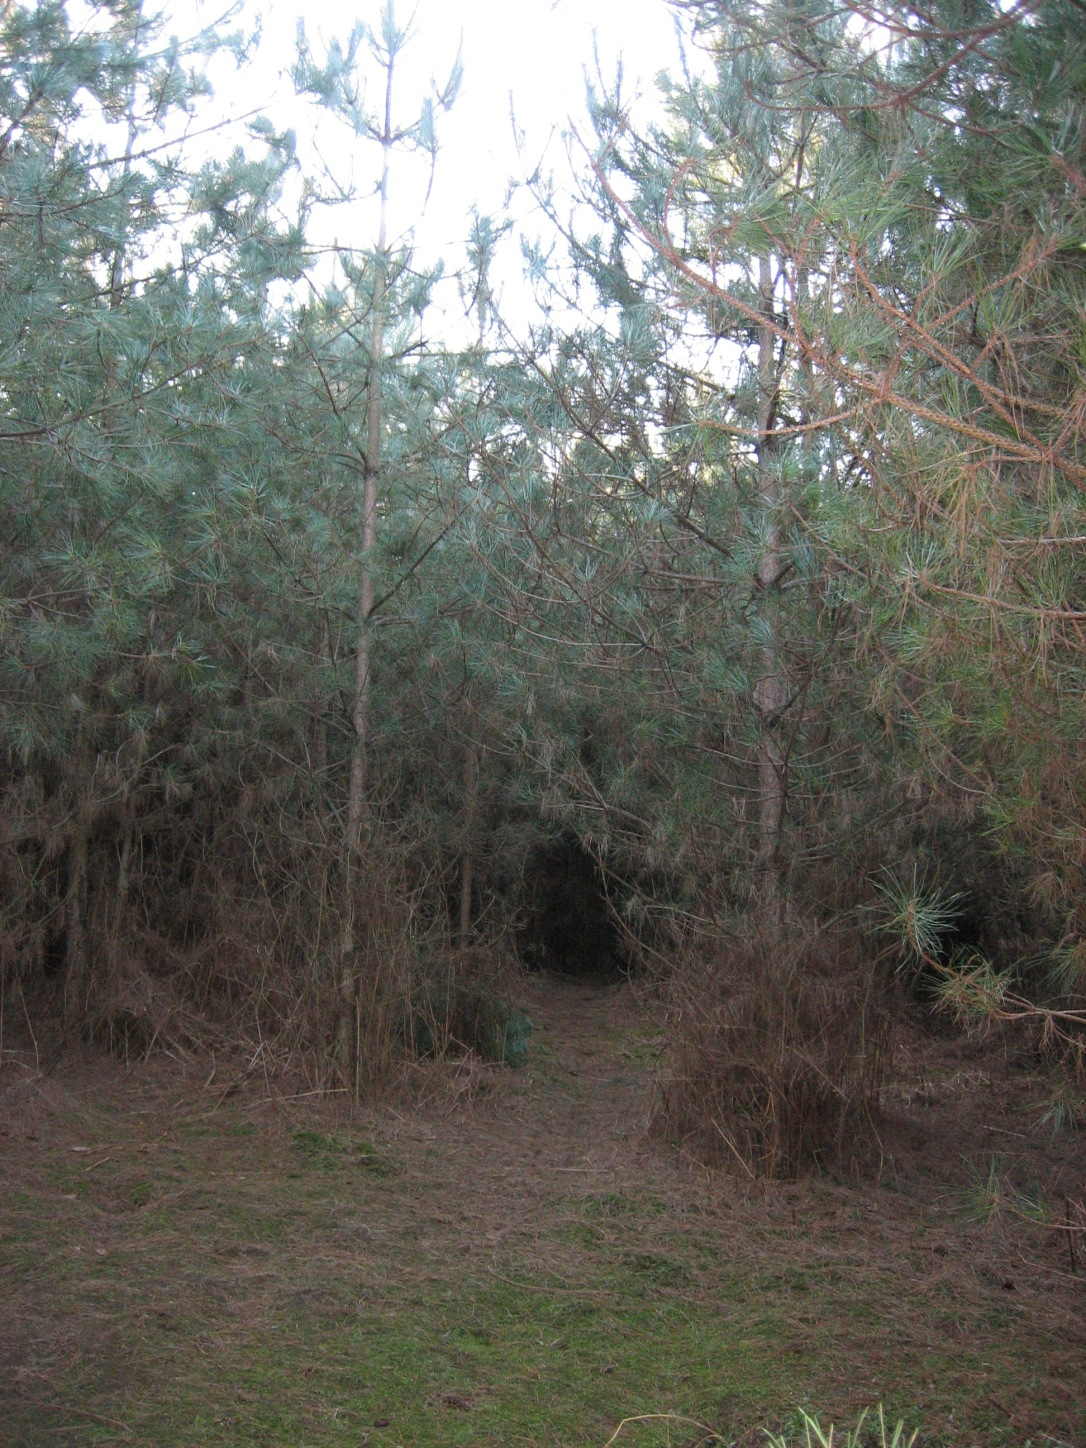 The clearing in Rendlesham Forest where the UFO is alleged to have landed